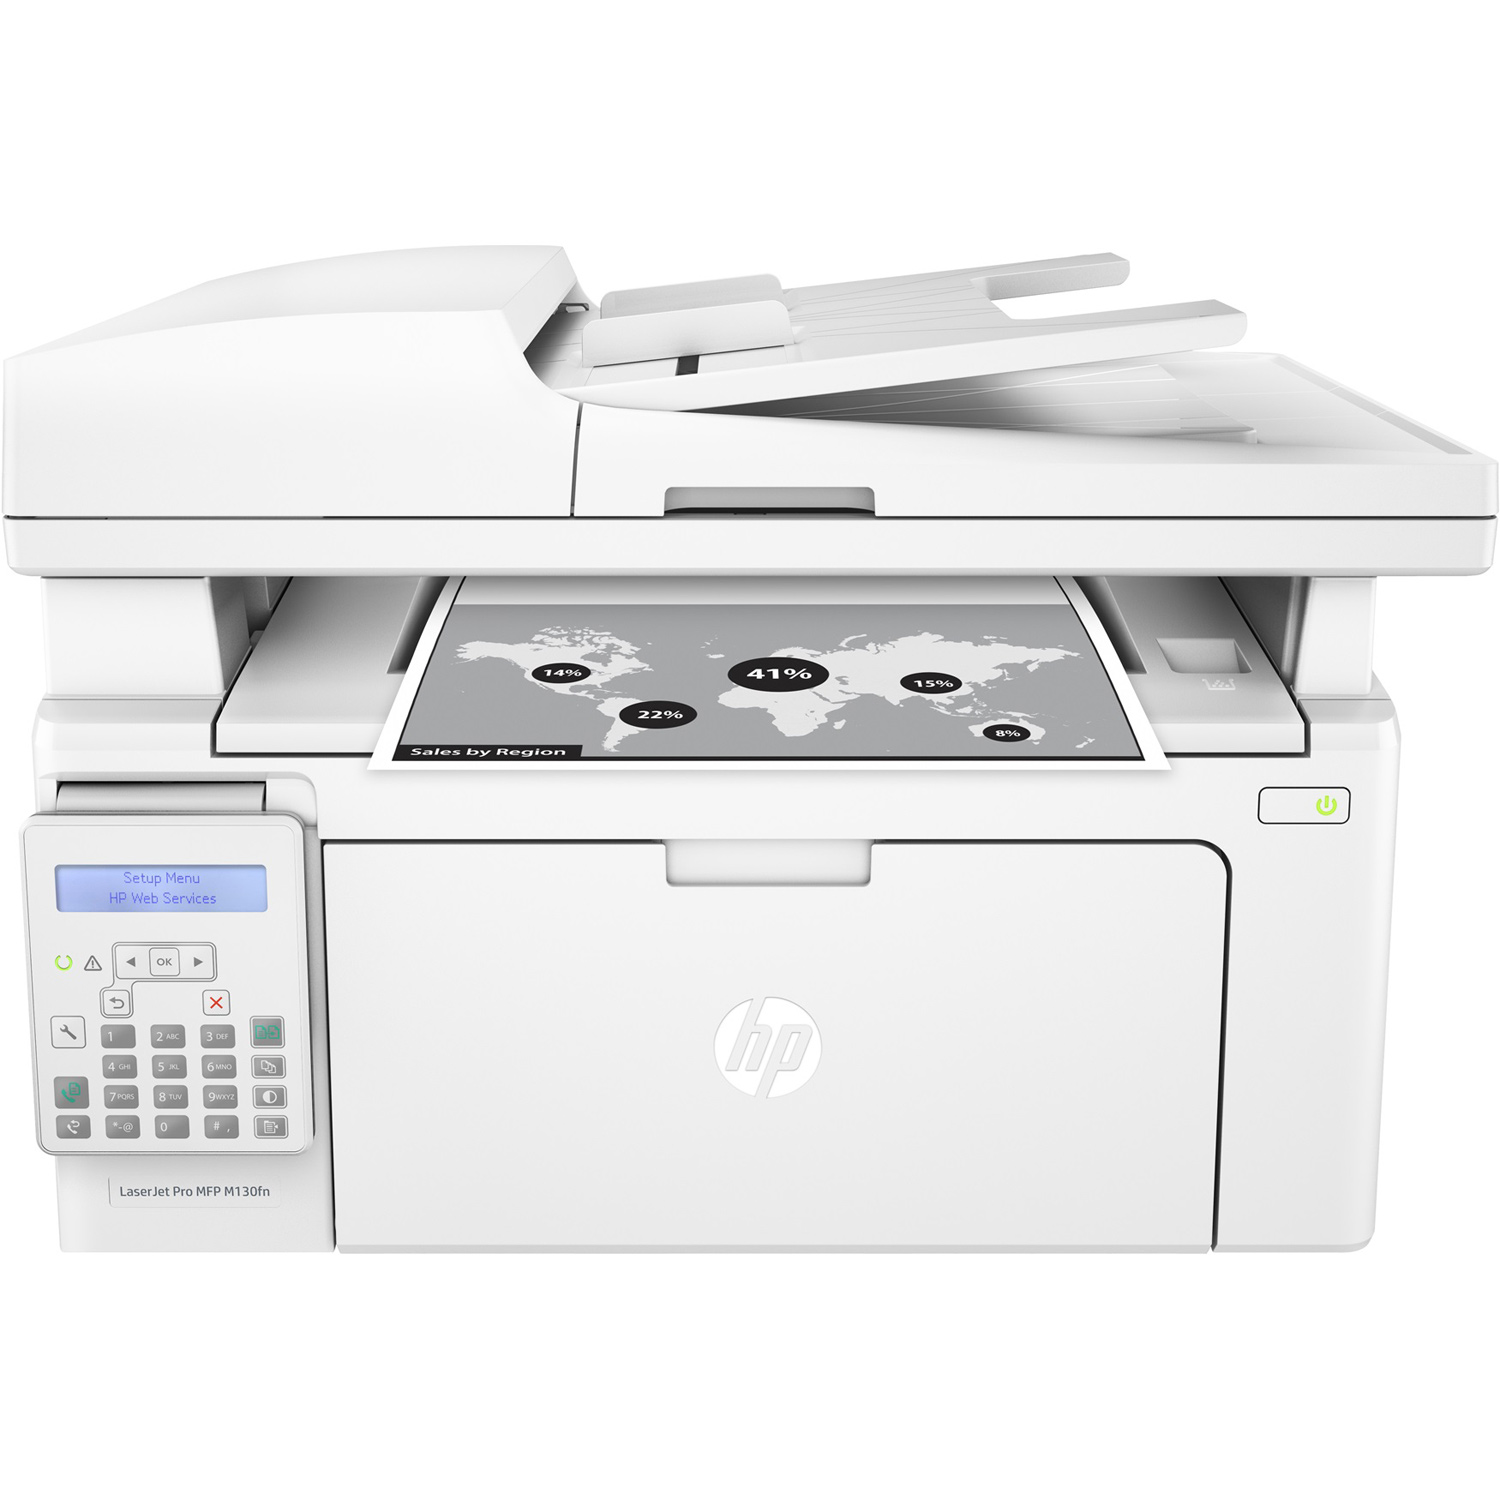 hp laserjet pro mfp m130fn imprimante multifonction hp sur. Black Bedroom Furniture Sets. Home Design Ideas